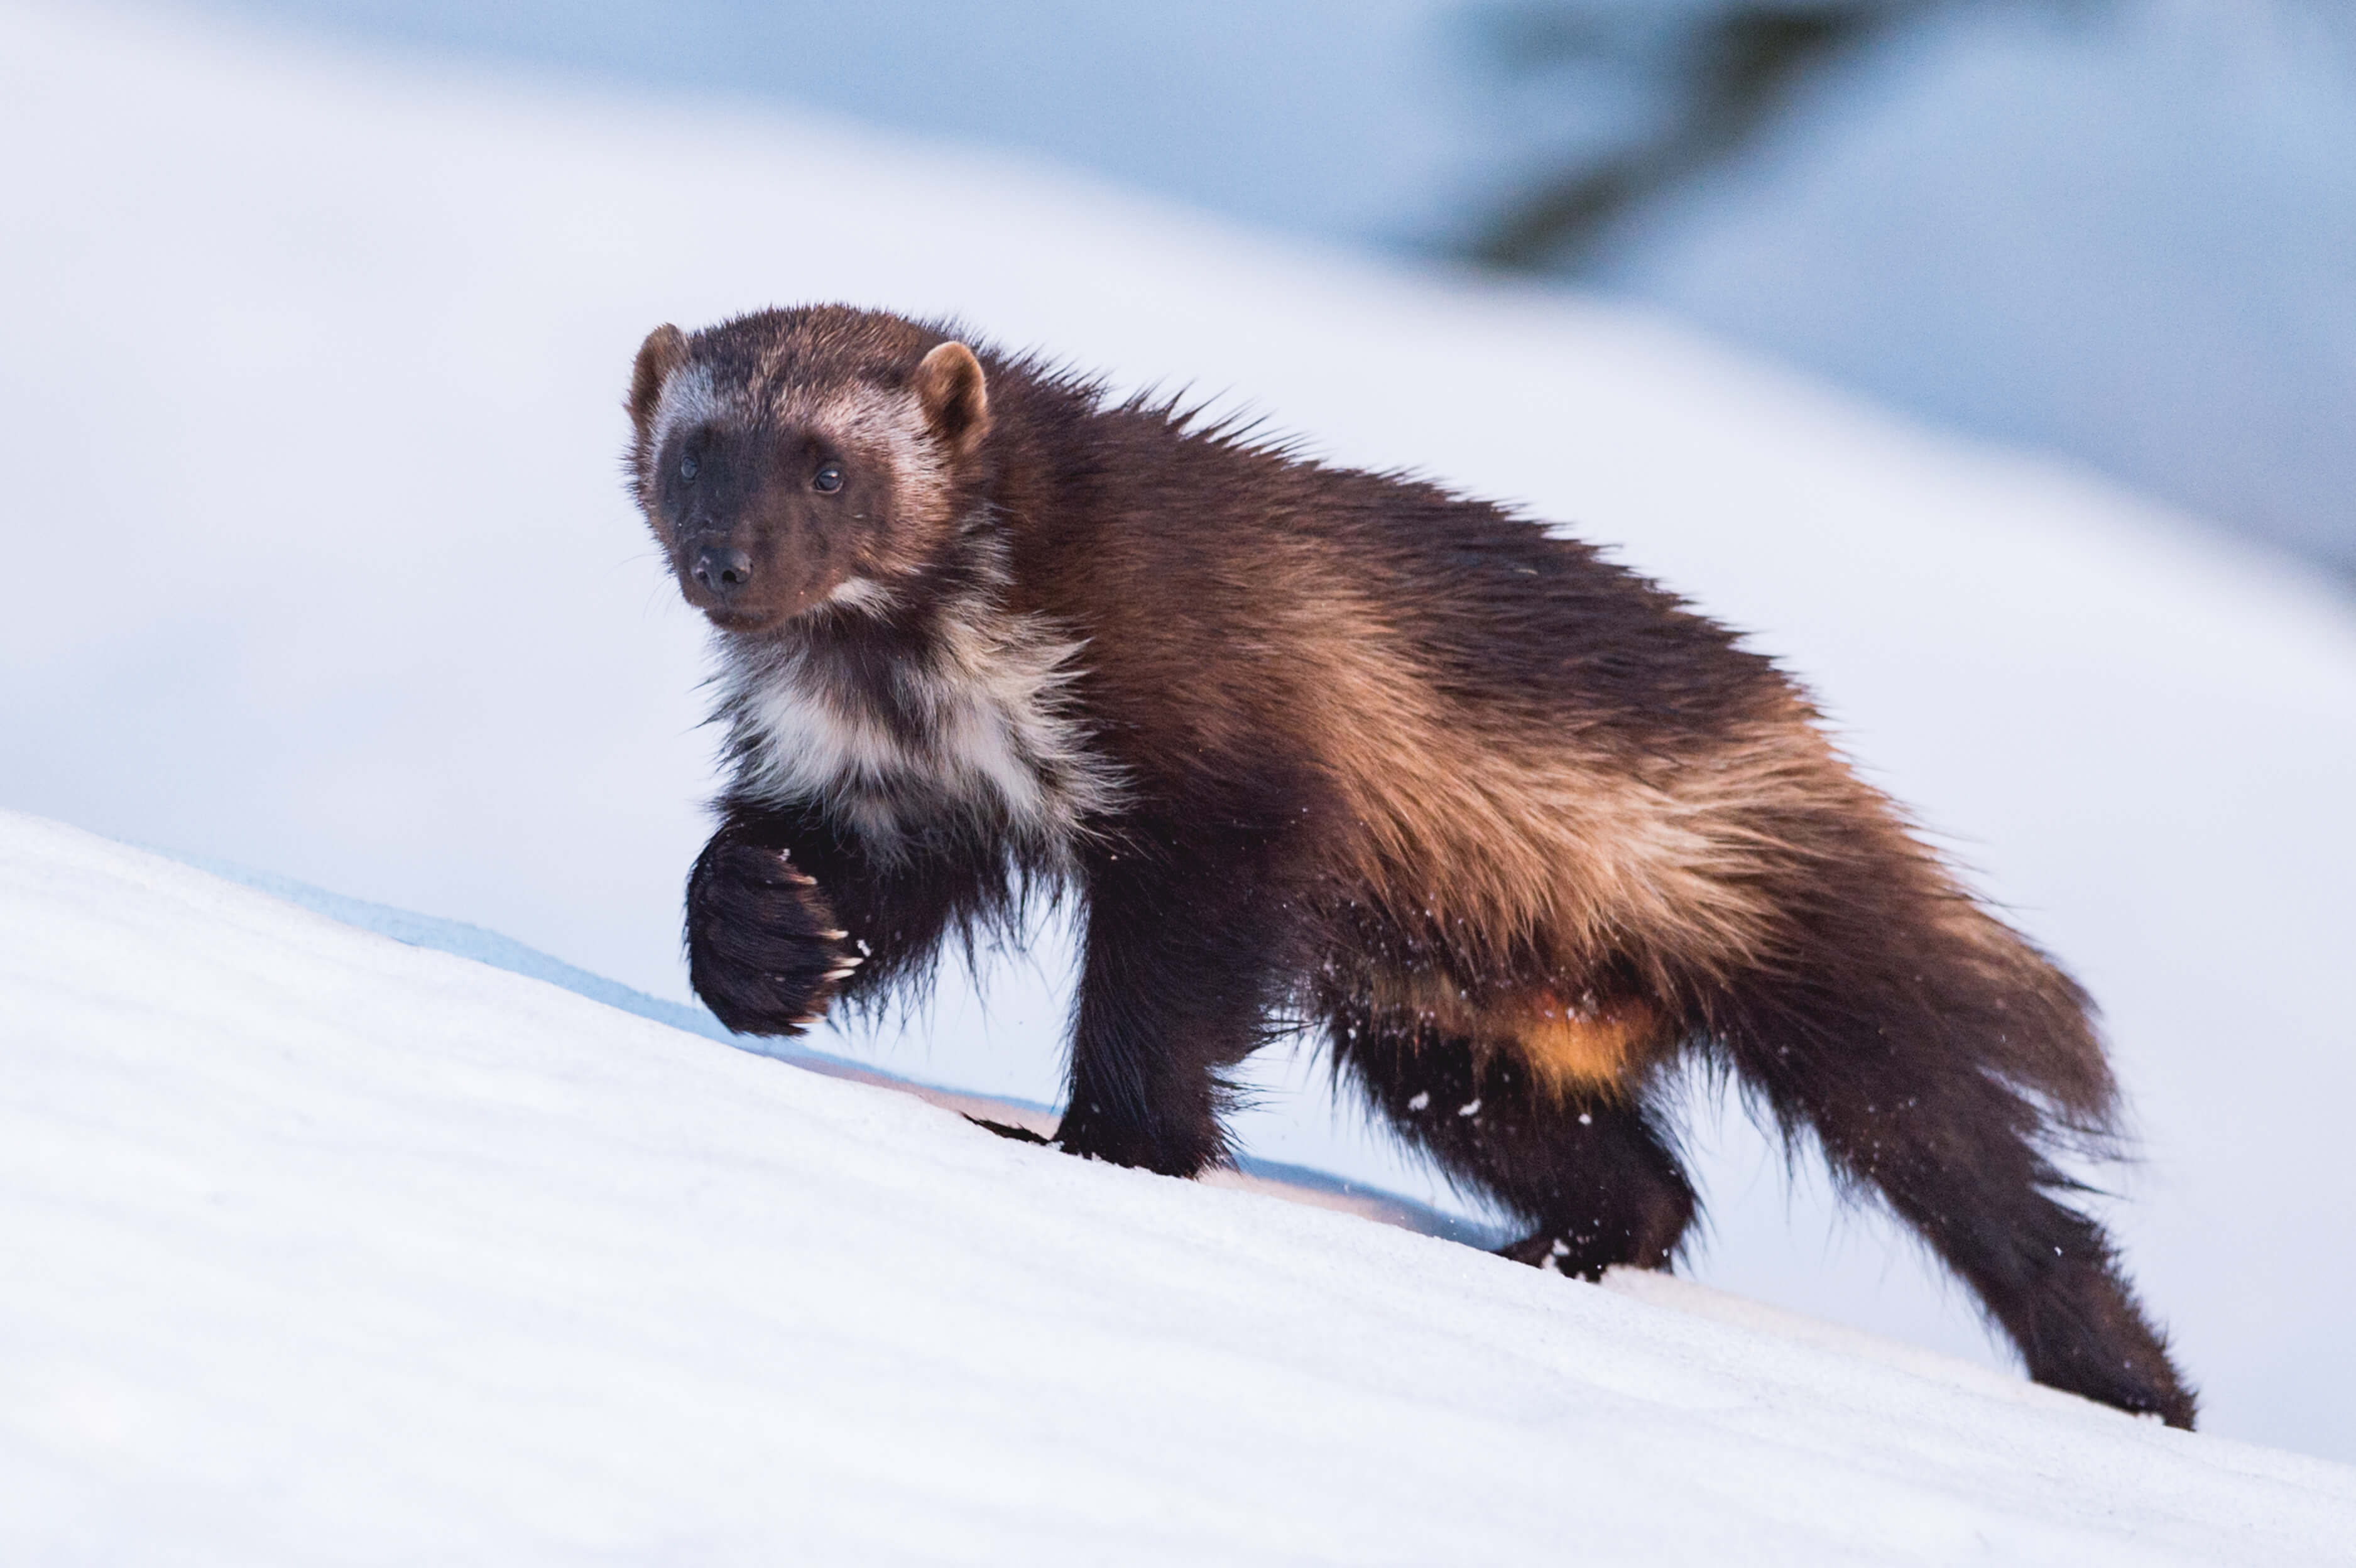 When wolverines walk, their paws spread almost double, like built-in snowshoes